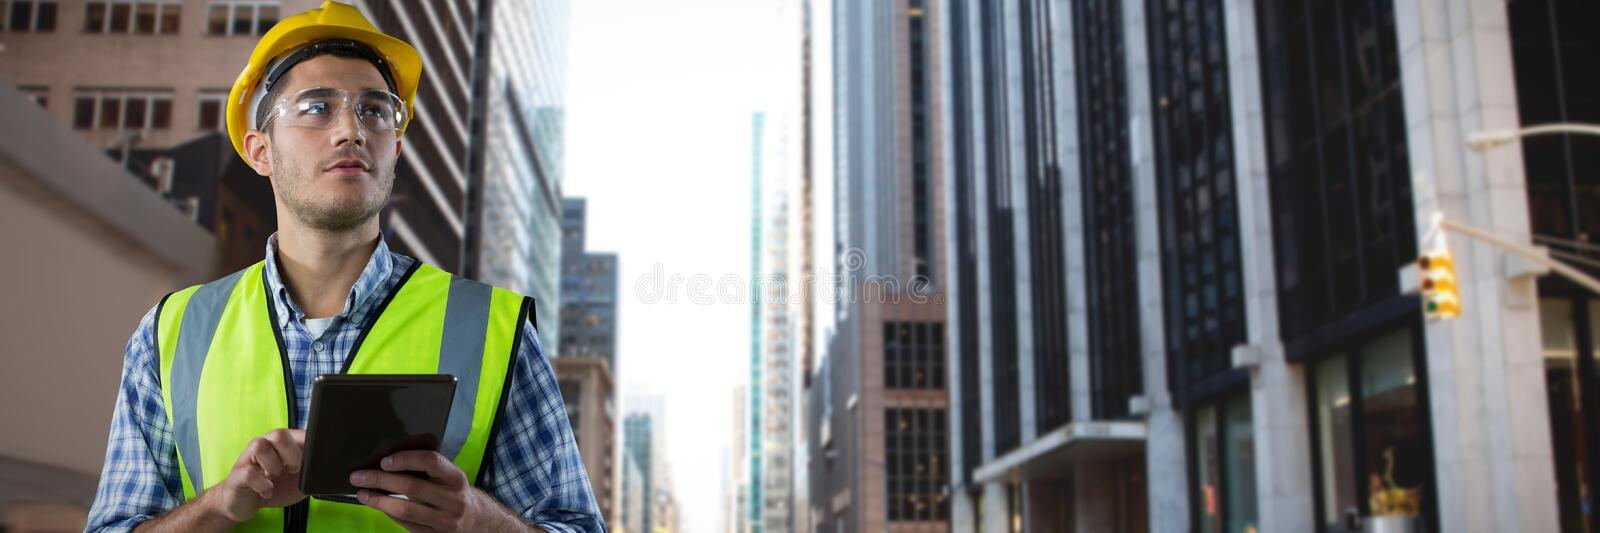 Composite image of concentrated construction worker with tablet royalty free stock photography